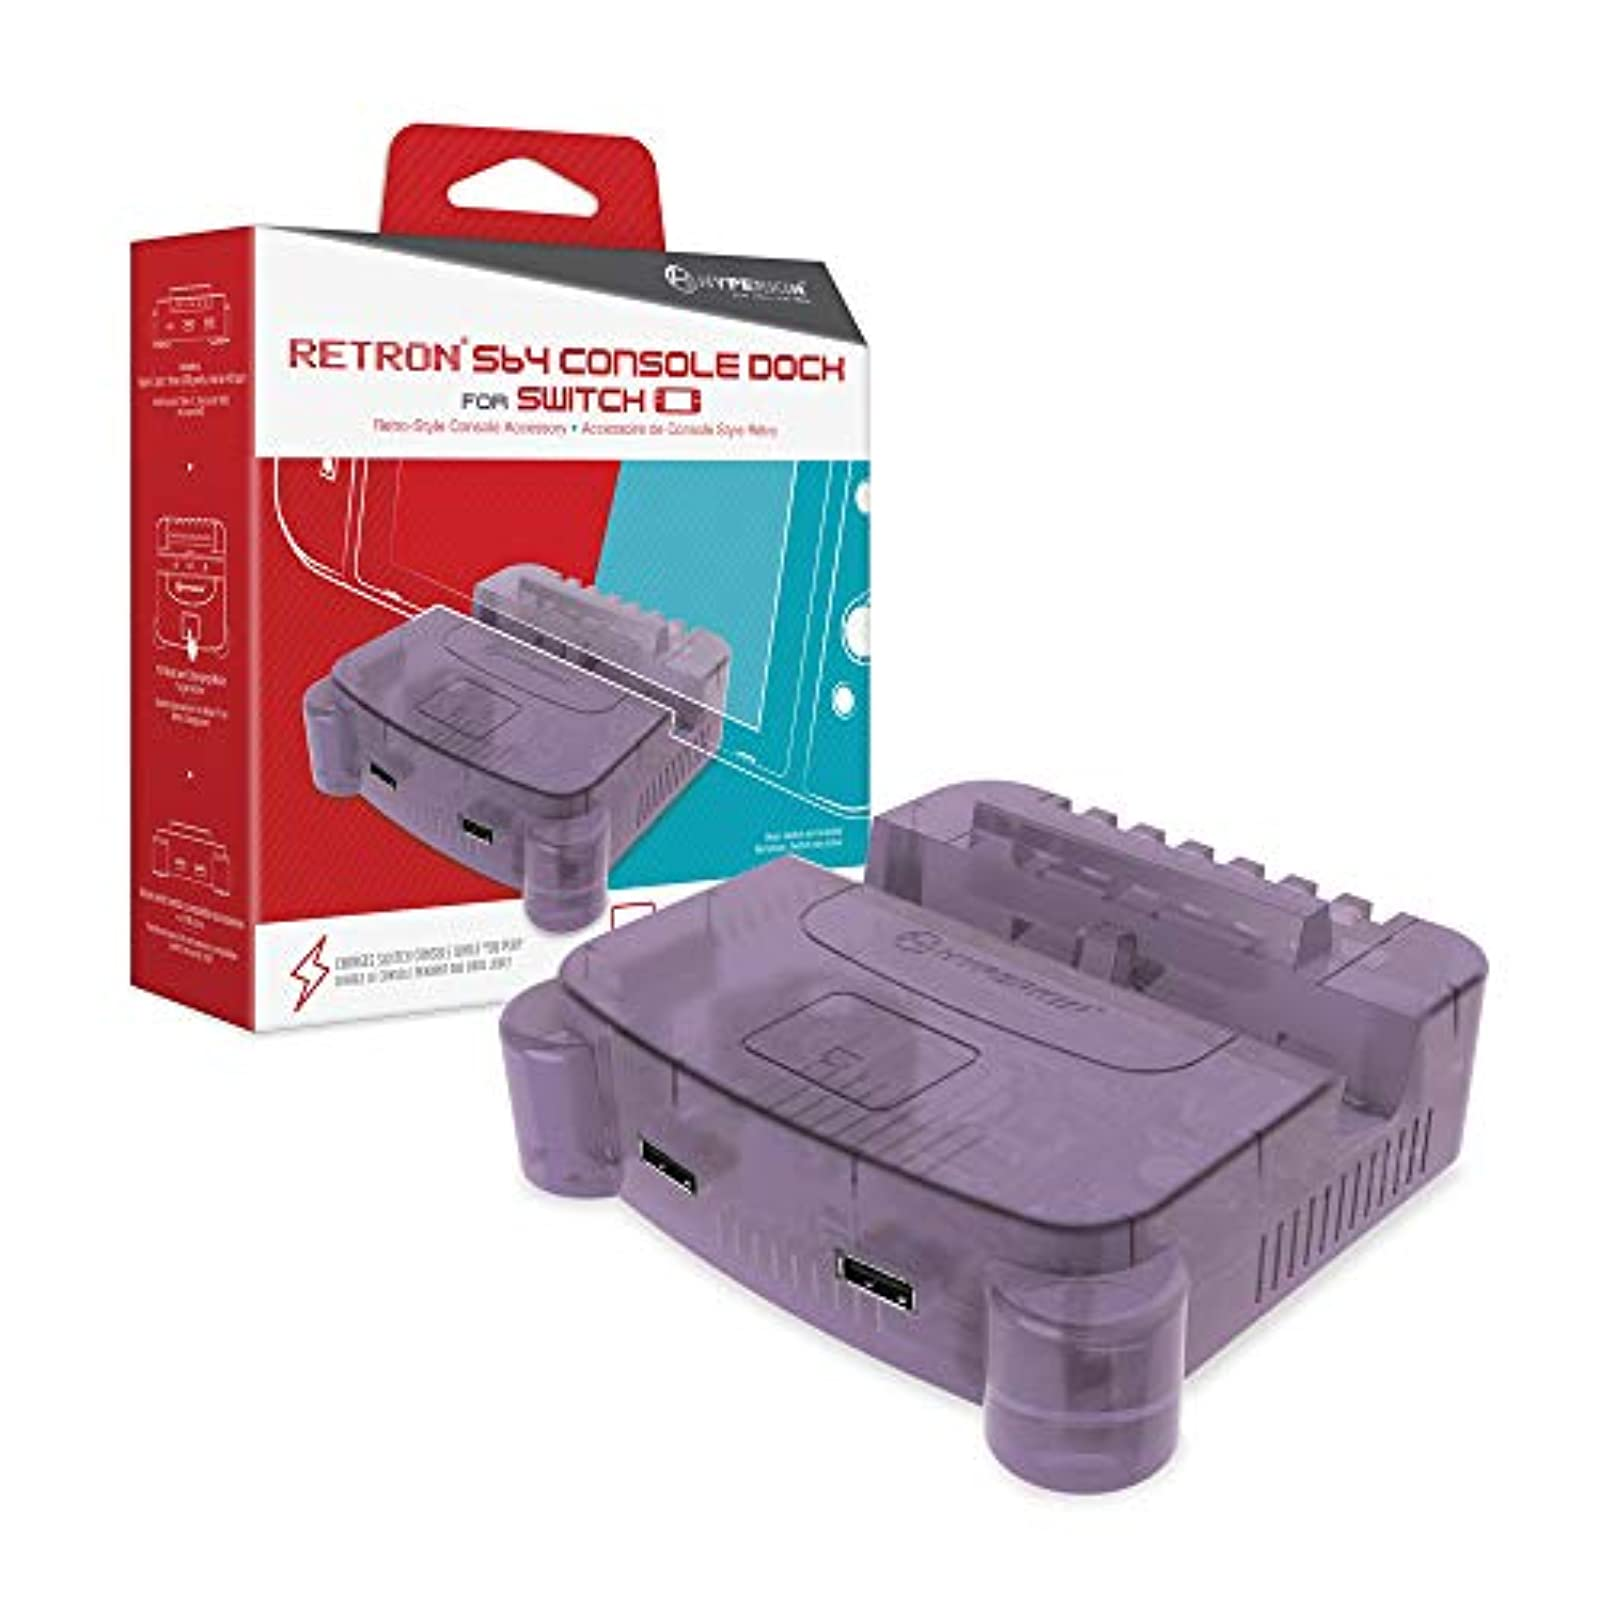 Hyperkin Retron S64 Console Dock For Nintendo Switch Purple